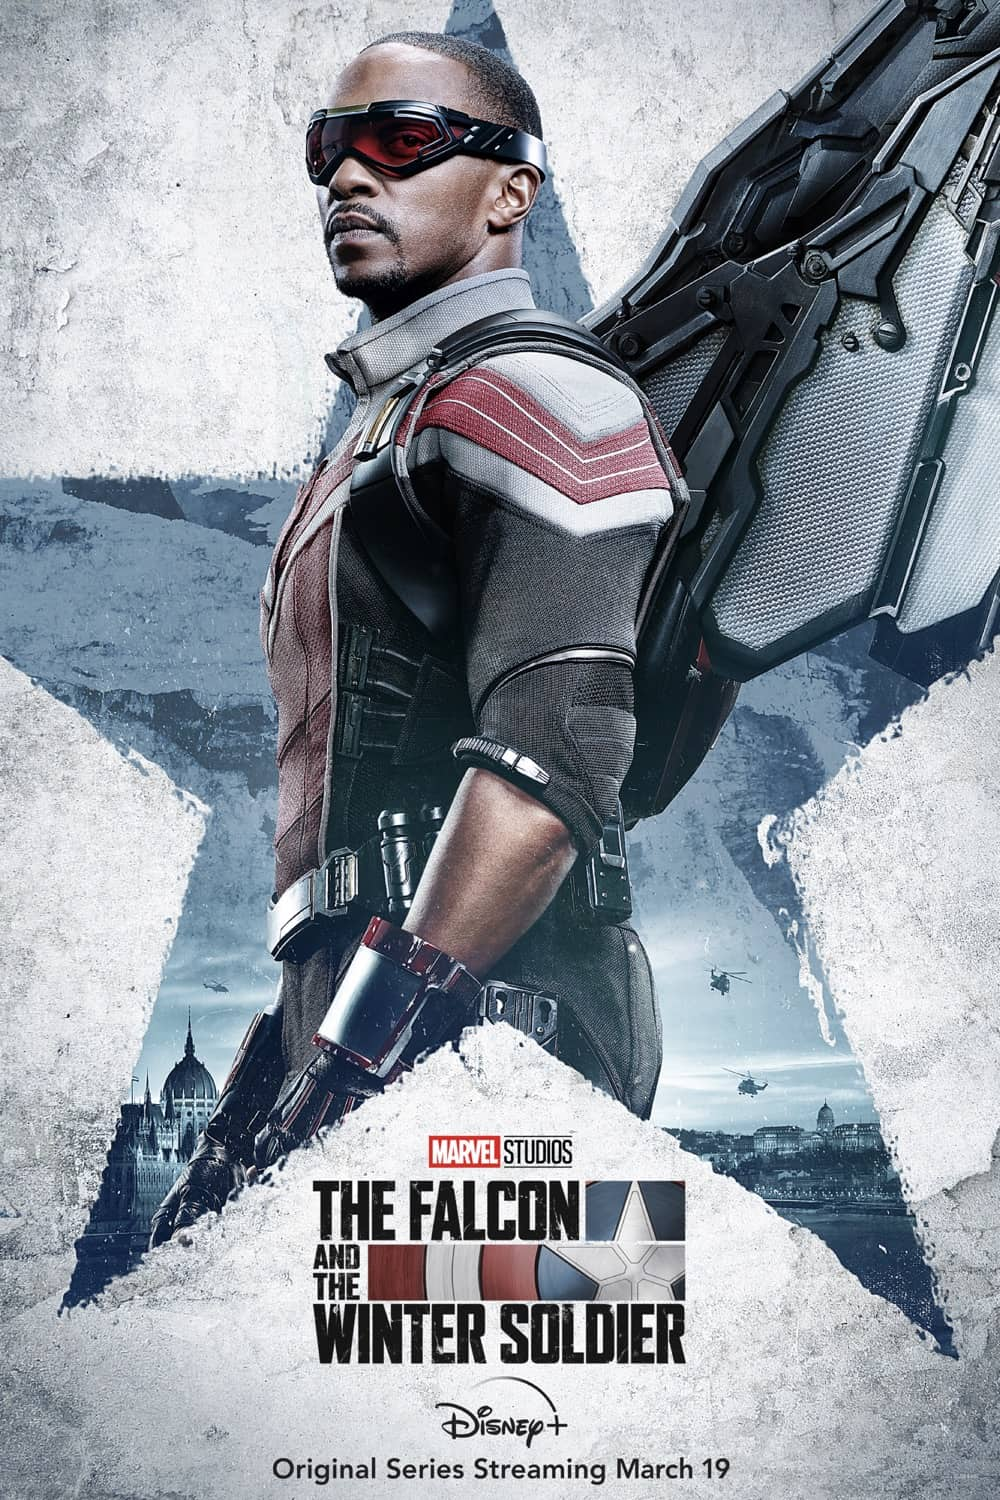 Anthony Mackie as Sam Wilson/ The Falcon The Falcon And The Winter Soldier Character Poster